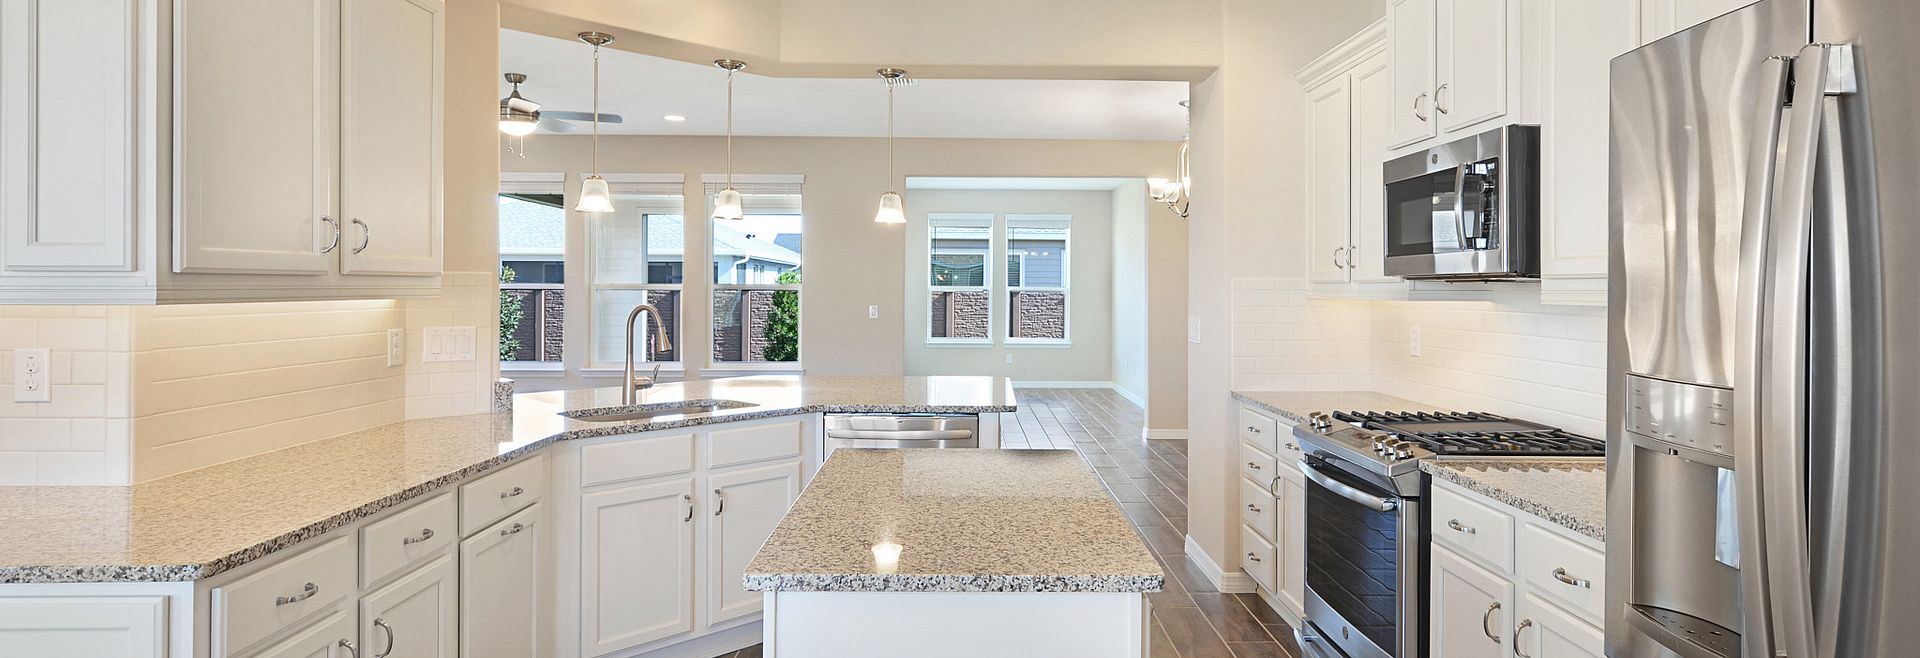 Trilogy at Ocala Preserve Quick Move In Home Monaco Plan  Kitchen